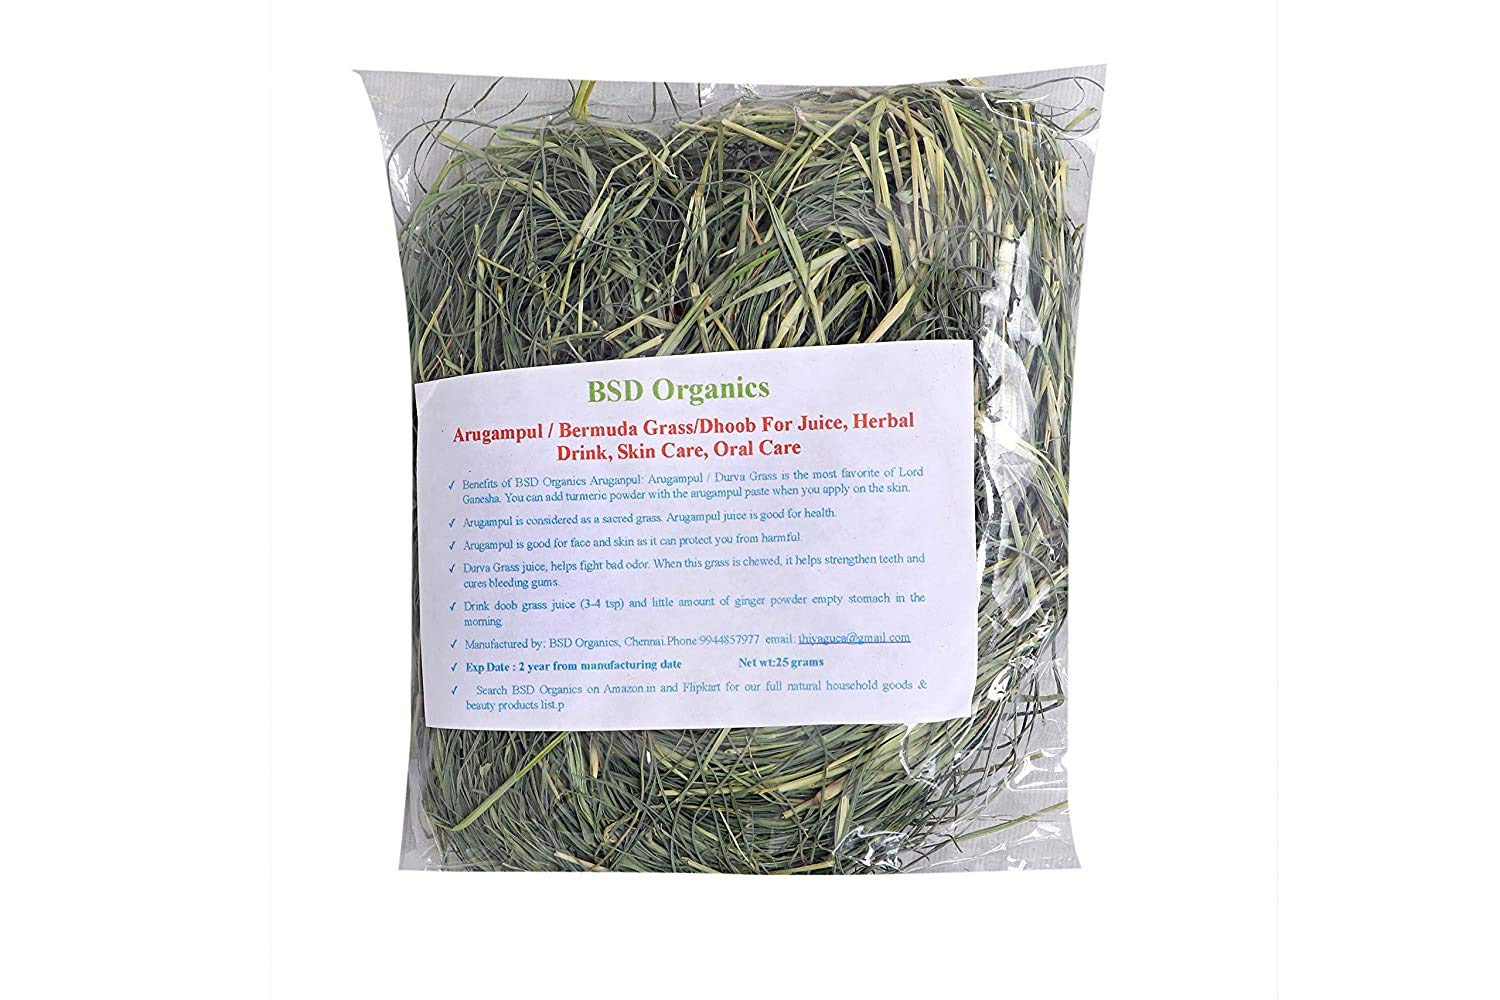 BSD Organics Arugampul/Bermuda Grass/Dhoob For Juice, Herbal Drink, Skin Care, Oral Care and more - 200 gram / 7 Ounce